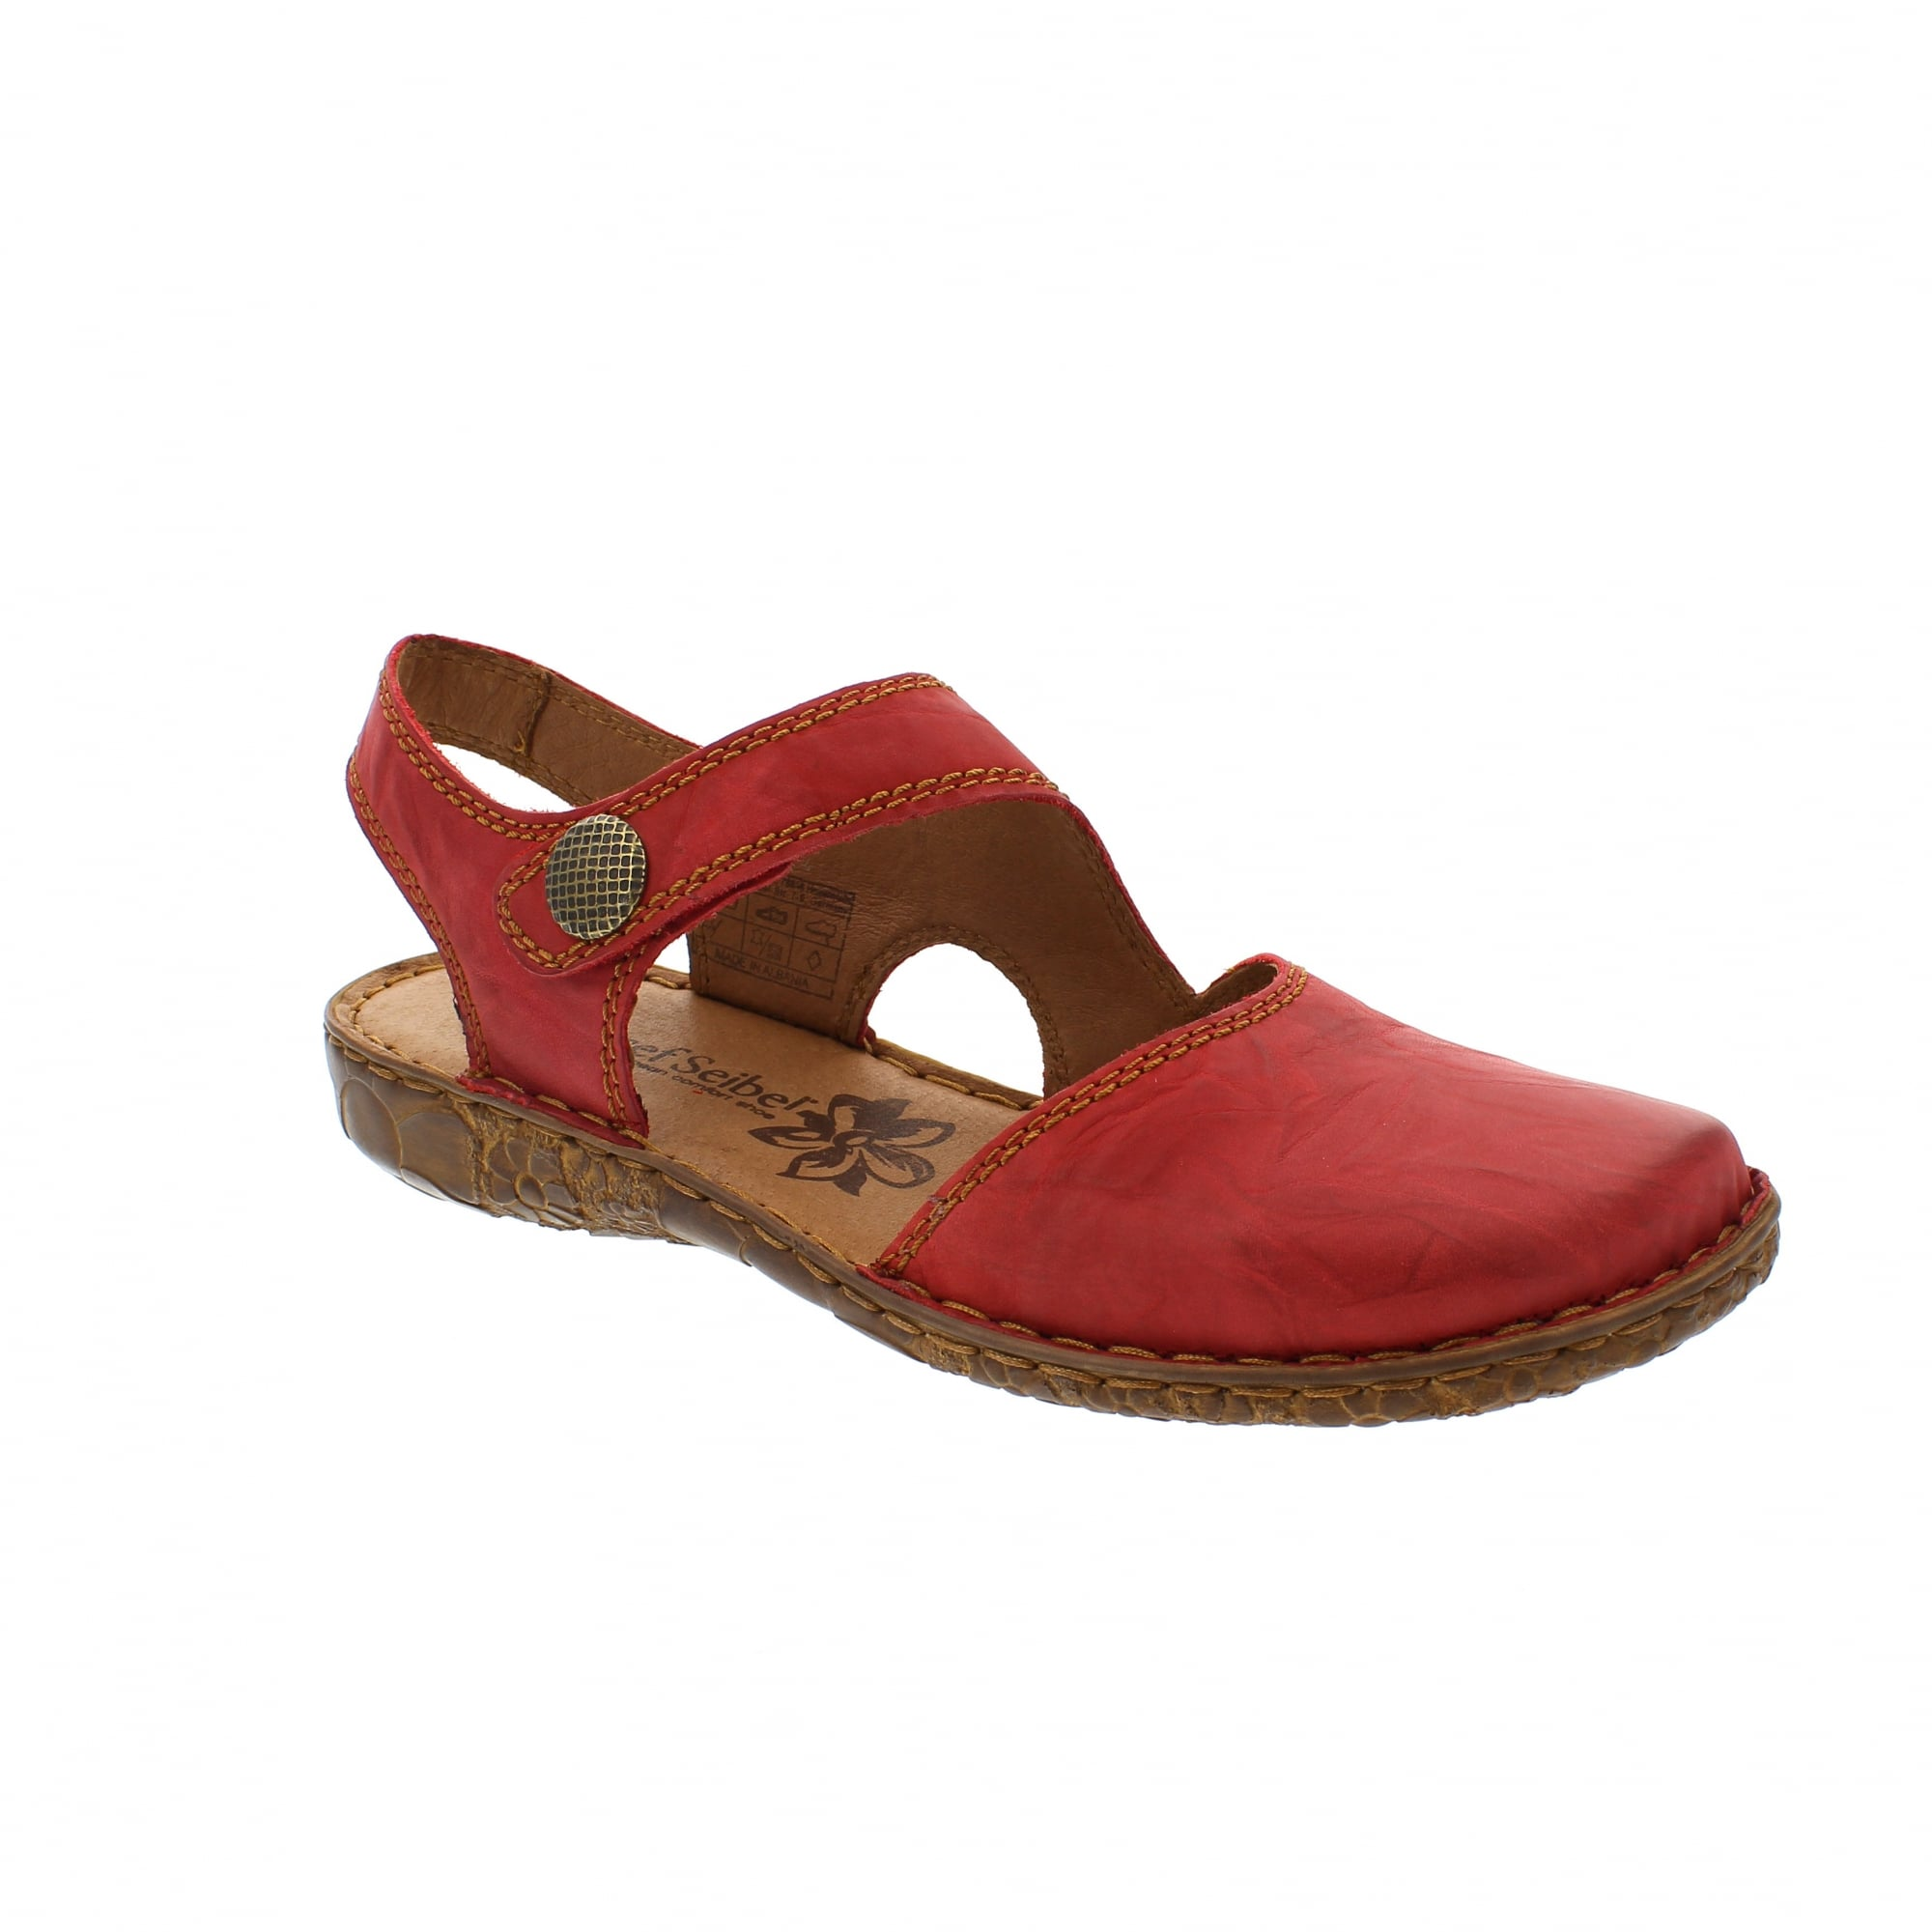 93956554141c Josef Seibel Rosalie 27 79527-95450 Red Womens Sandals